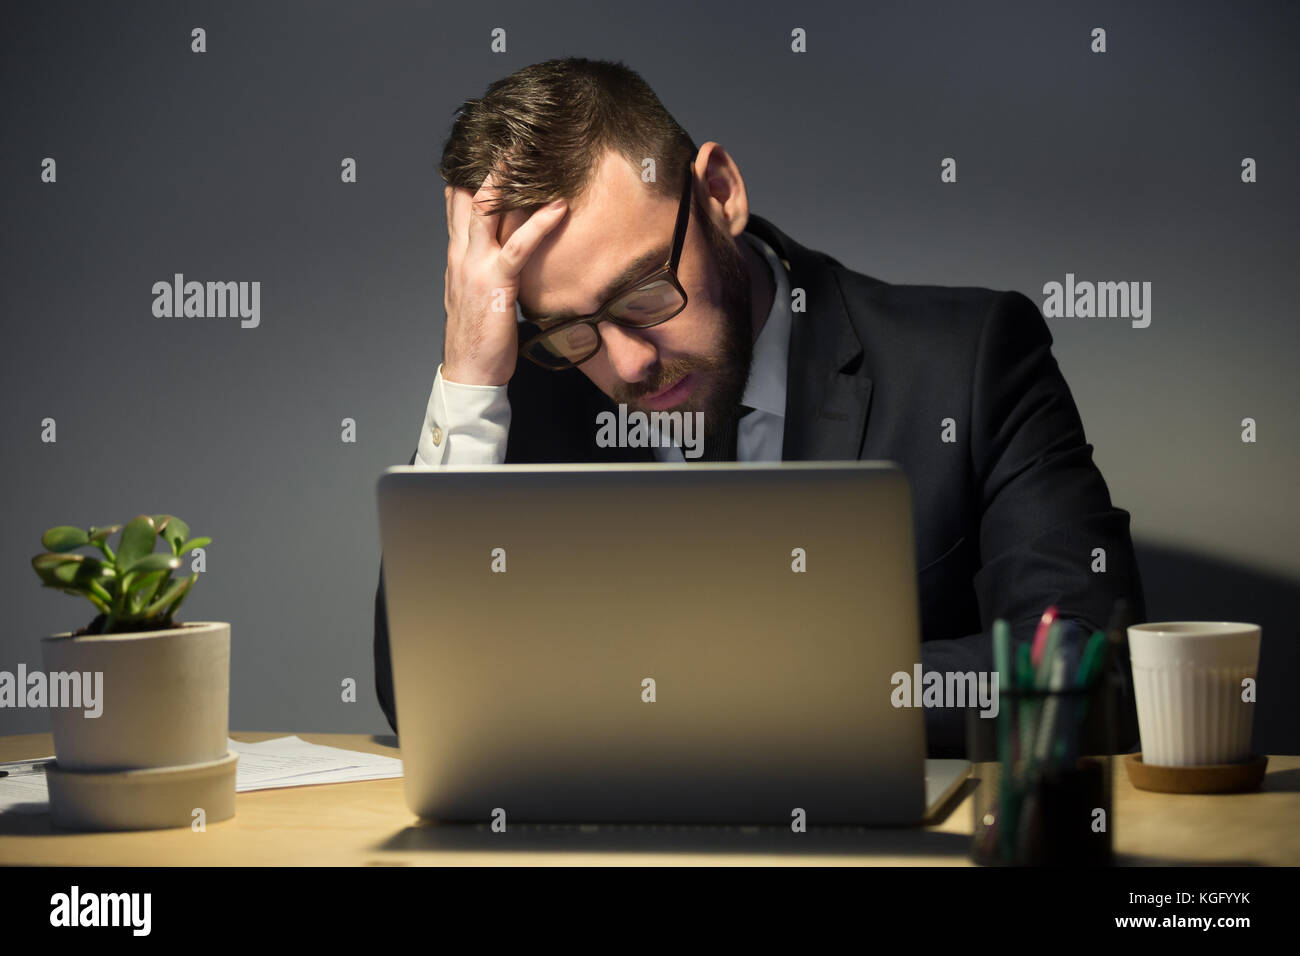 Too much work concept. Troubled man in glasses reading about recent problem on laptop computer, deep in thoughts - Stock Image